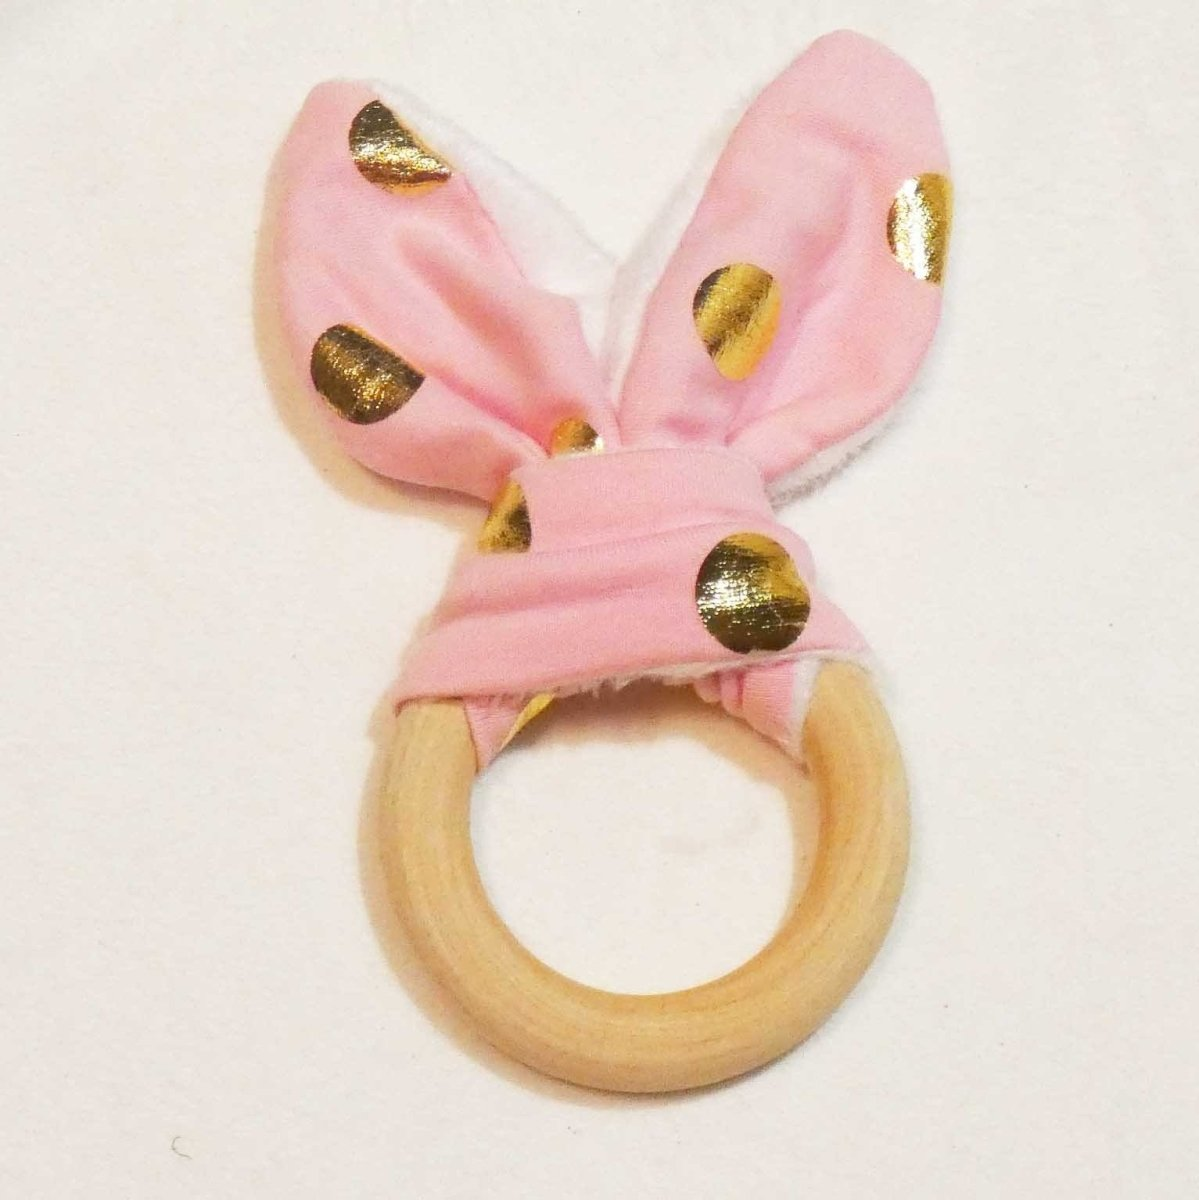 Natural Wood Rabbit Ear Teething Ring -Pink with Gold Dots - Imaginations Unbound